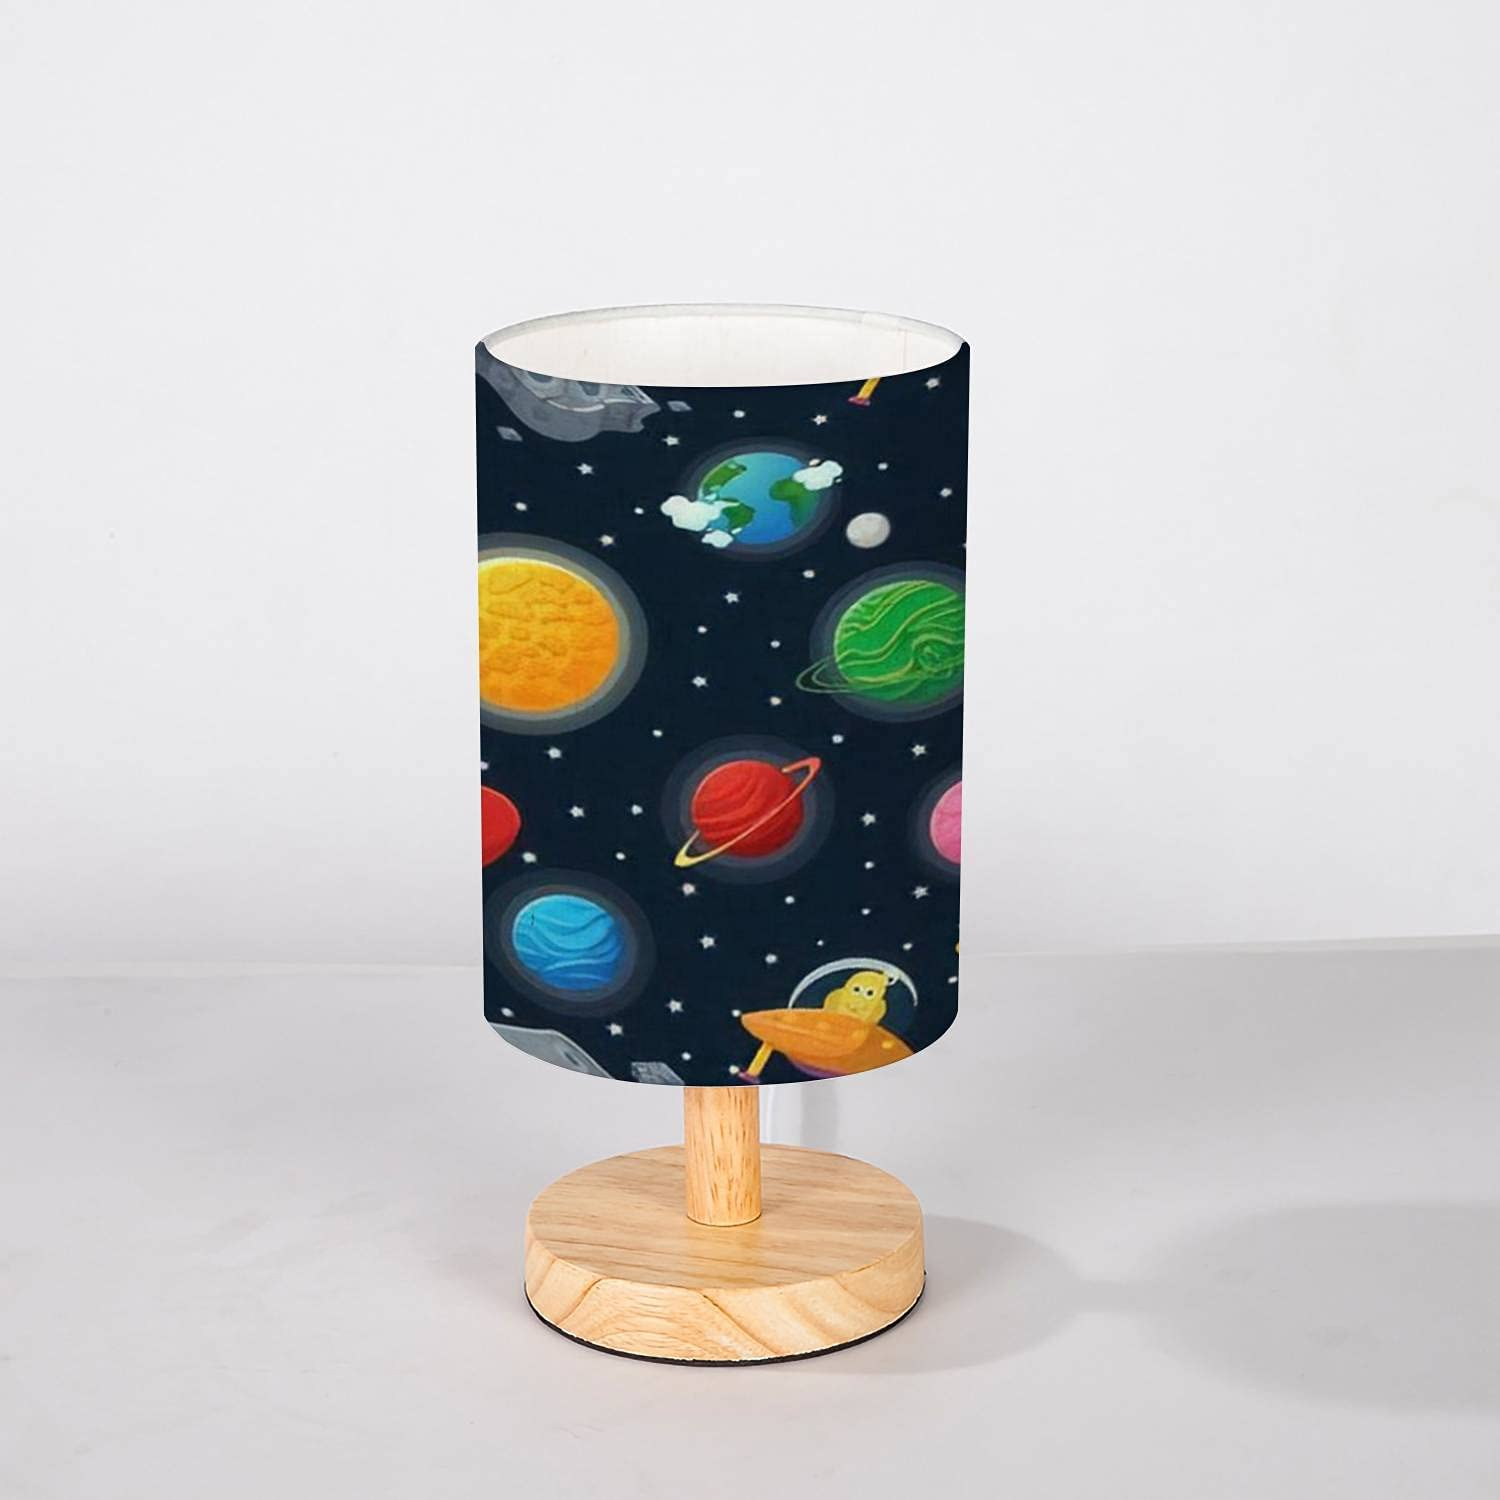 Minimalist Bedside Table Lamp 2021 spring and summer new with Constellations Cheap mail order specialty store Pattern Planet